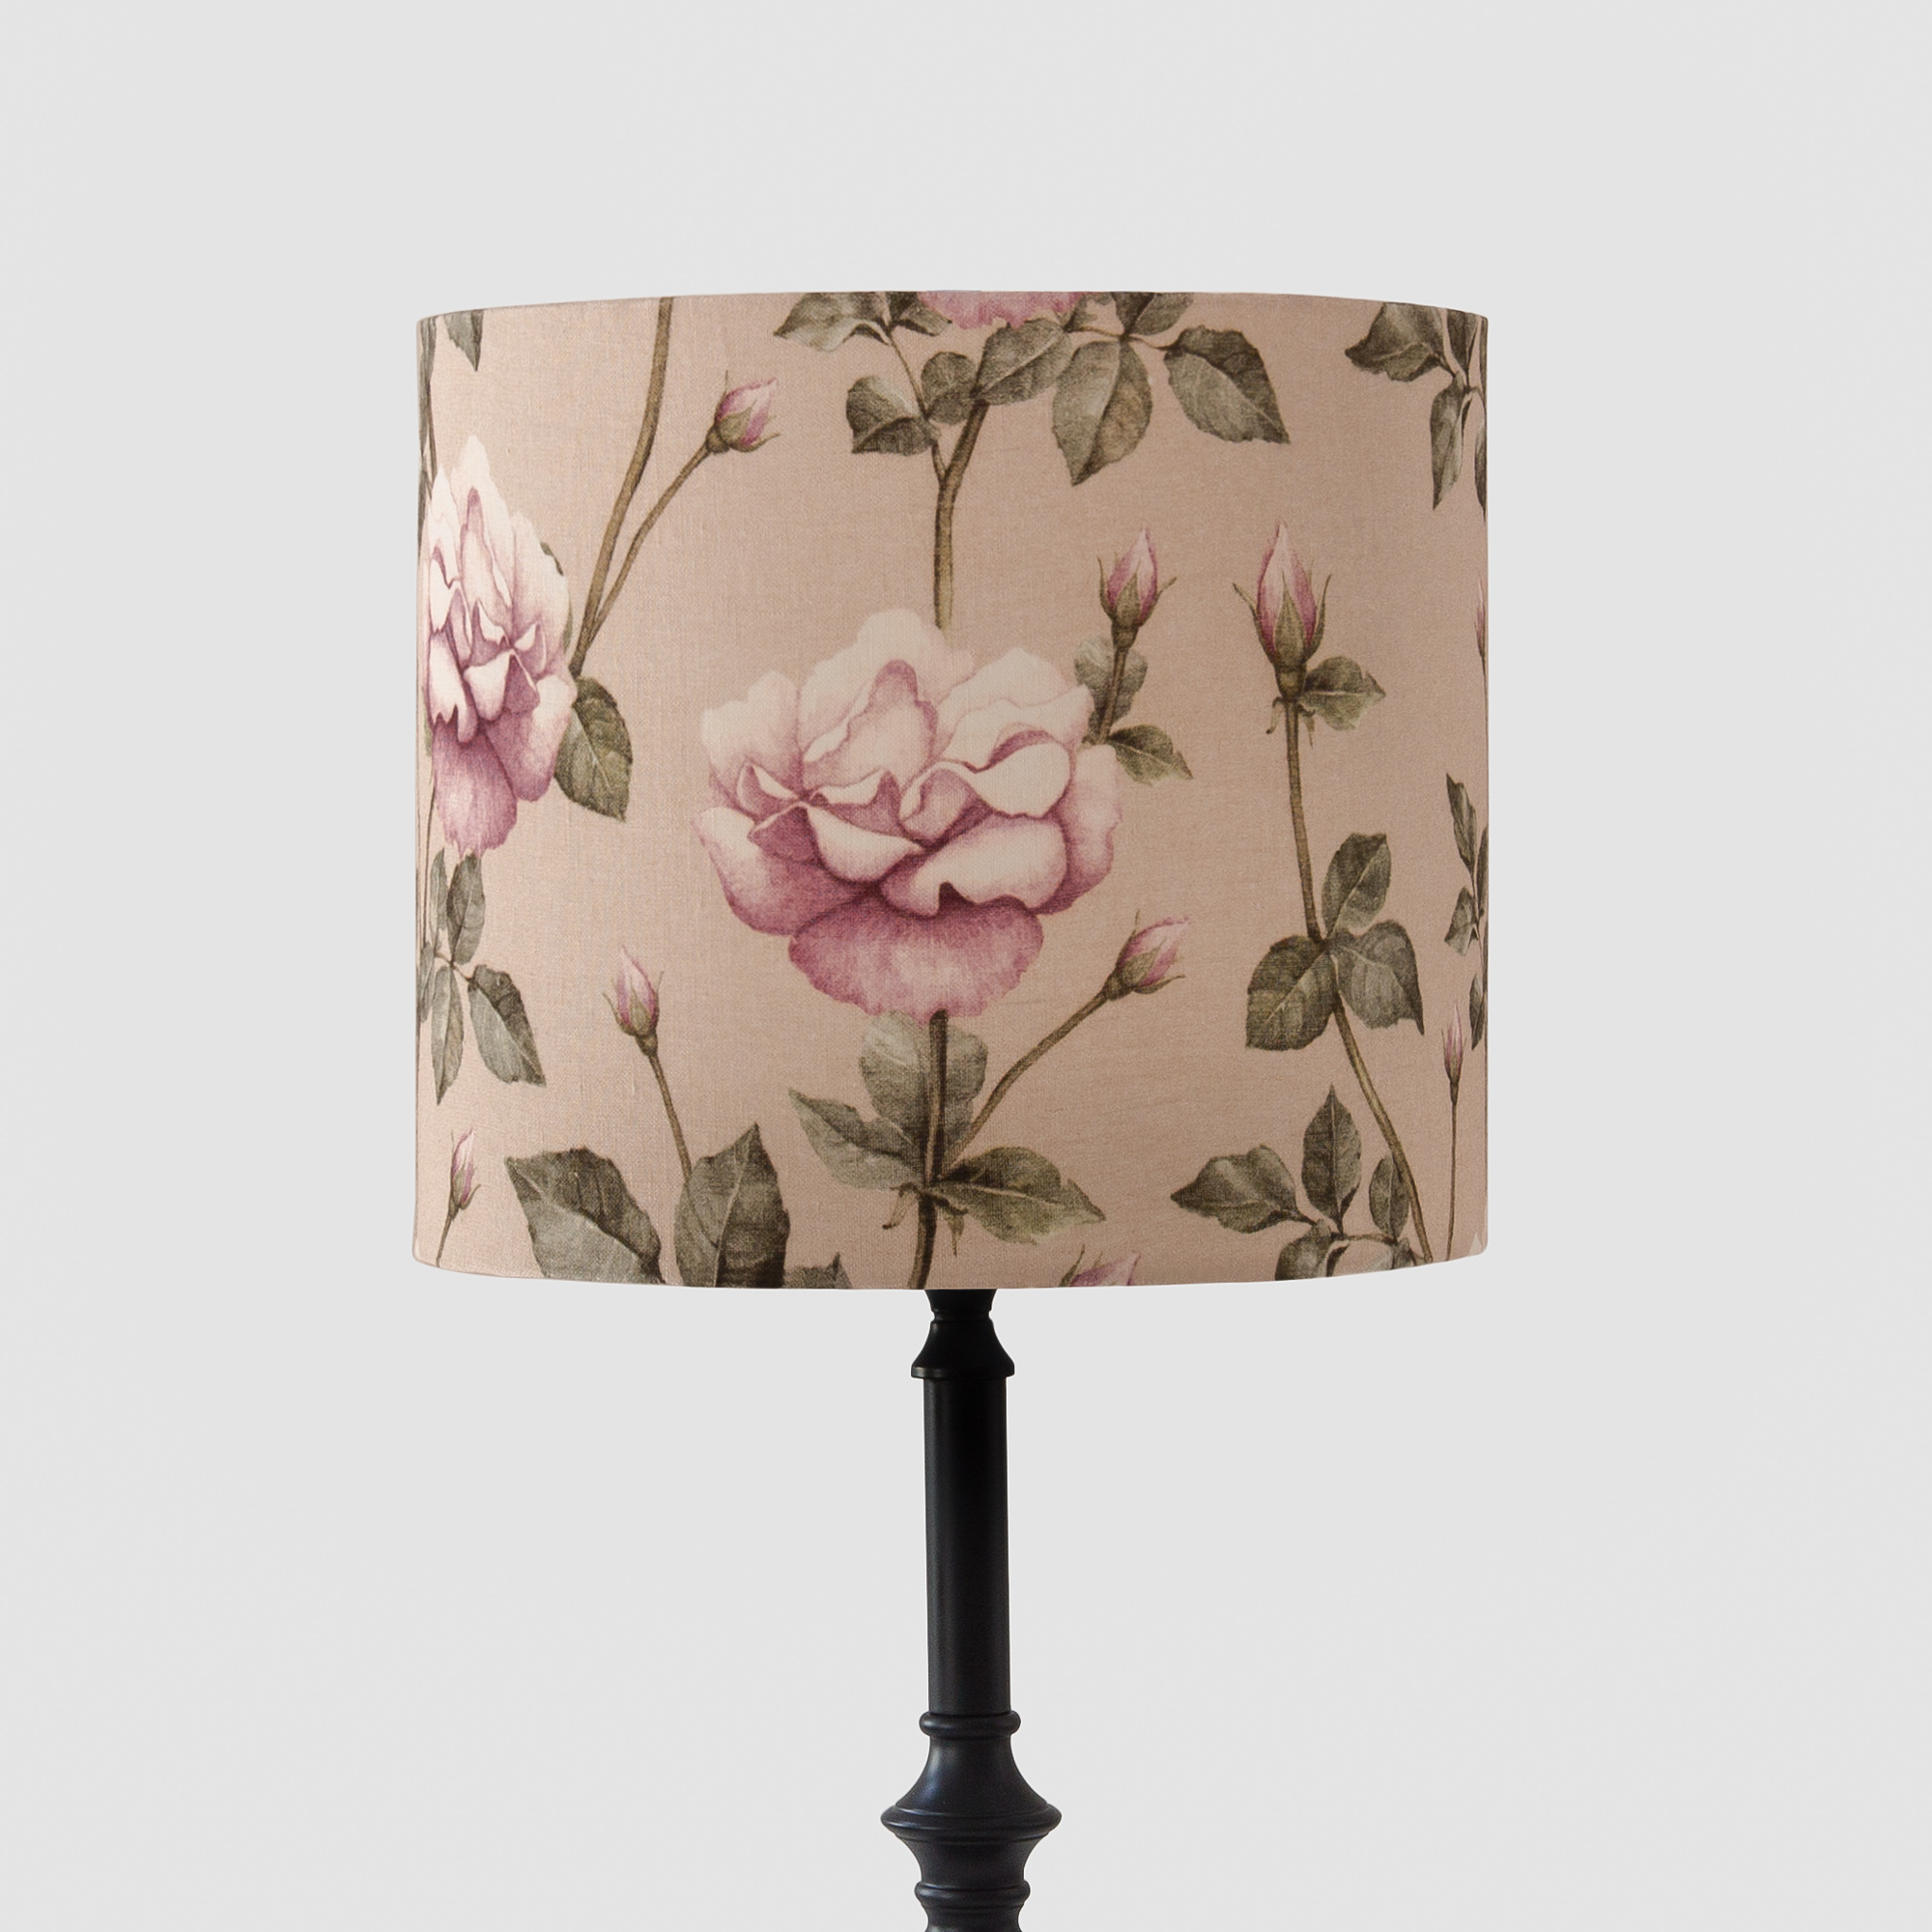 Chalet Cylindrical Table Lampshade - Secret Garden